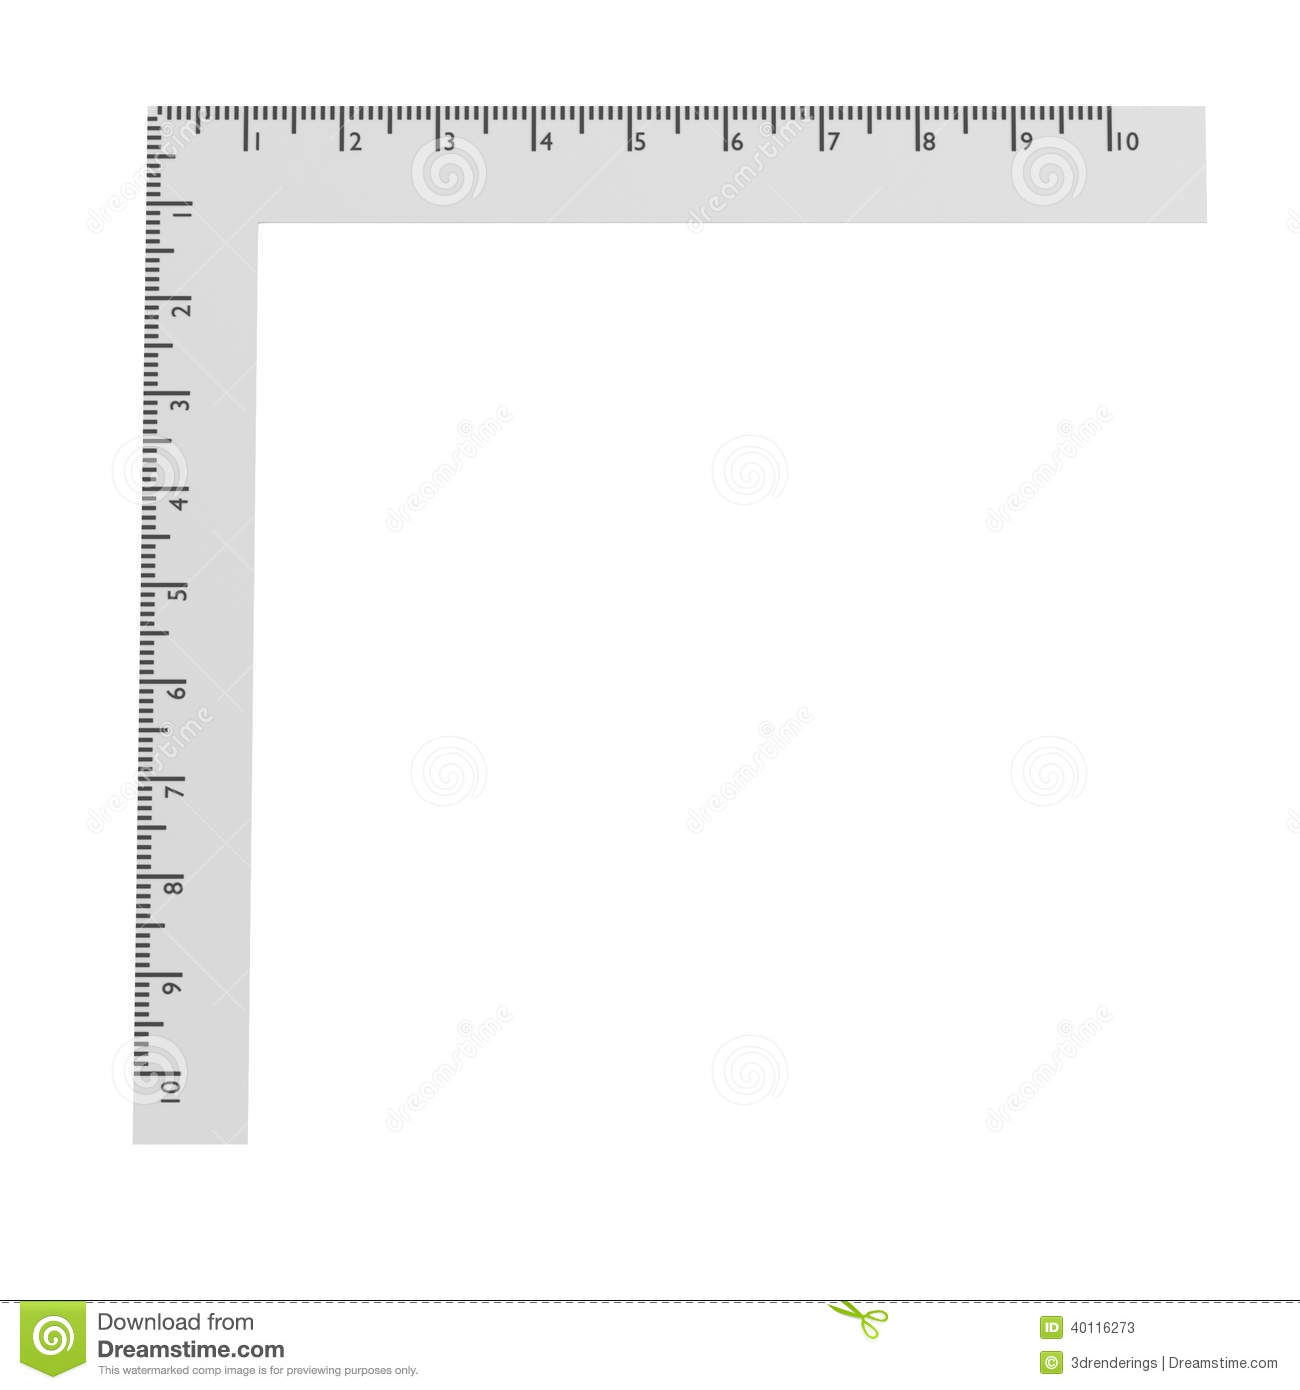 3d Render Of Stationery Tool - Ruler Stock Illustration